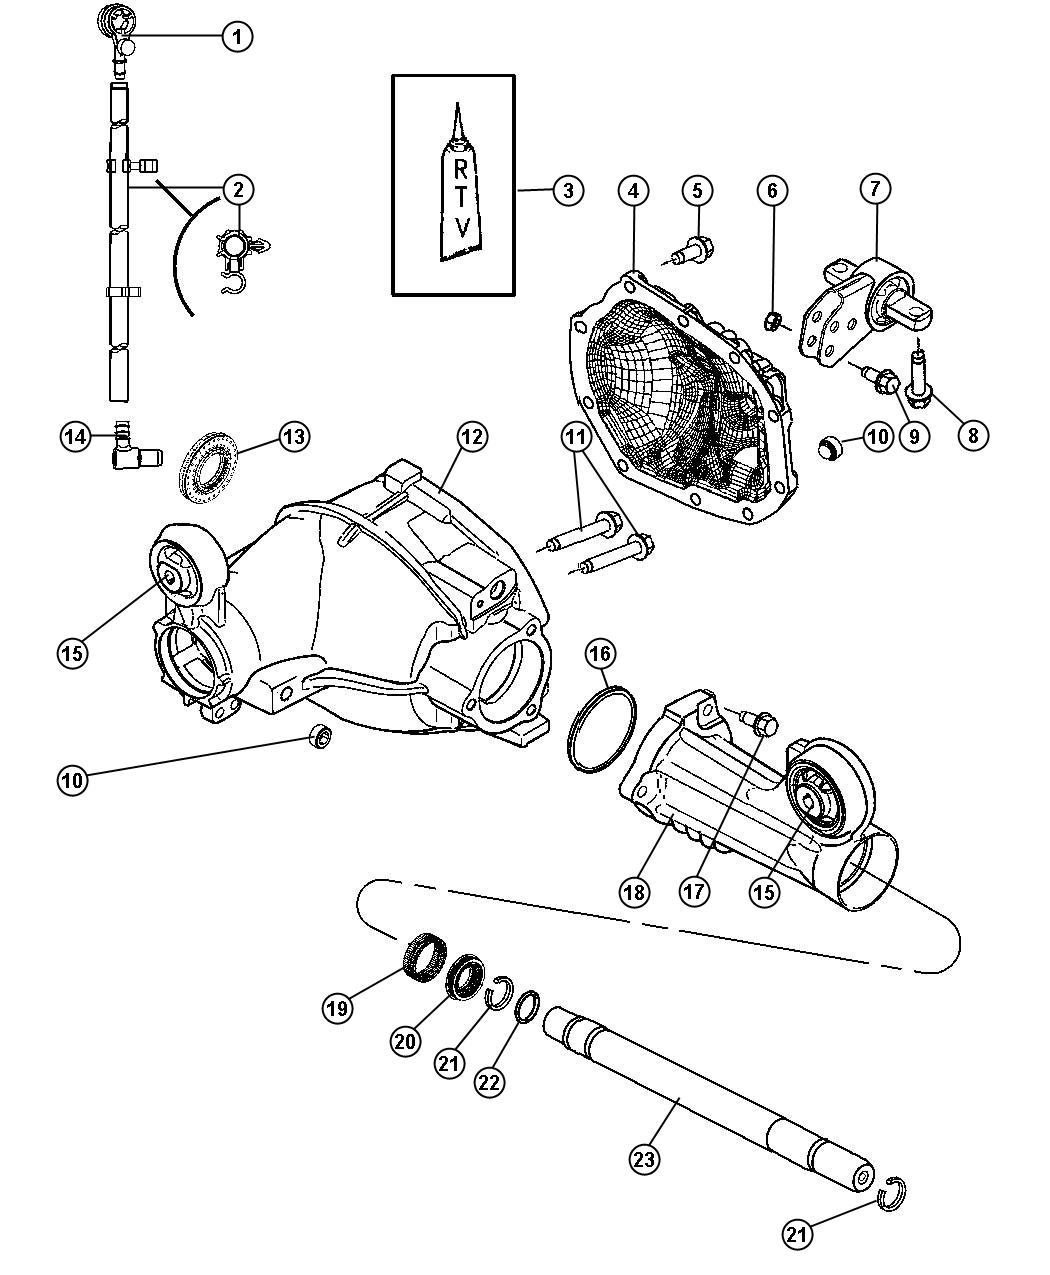 Dodge Charger Isolator. Axle mounting. Front, ratio